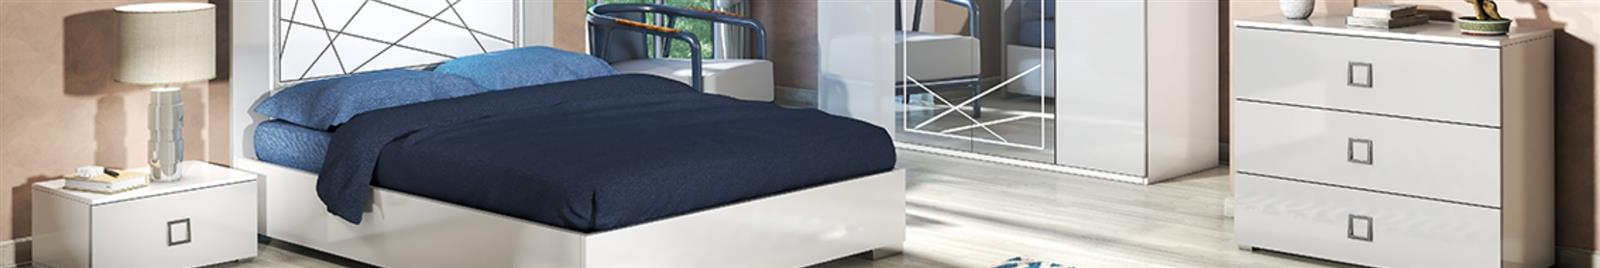 Roxana - Modern Bedroom Furniture